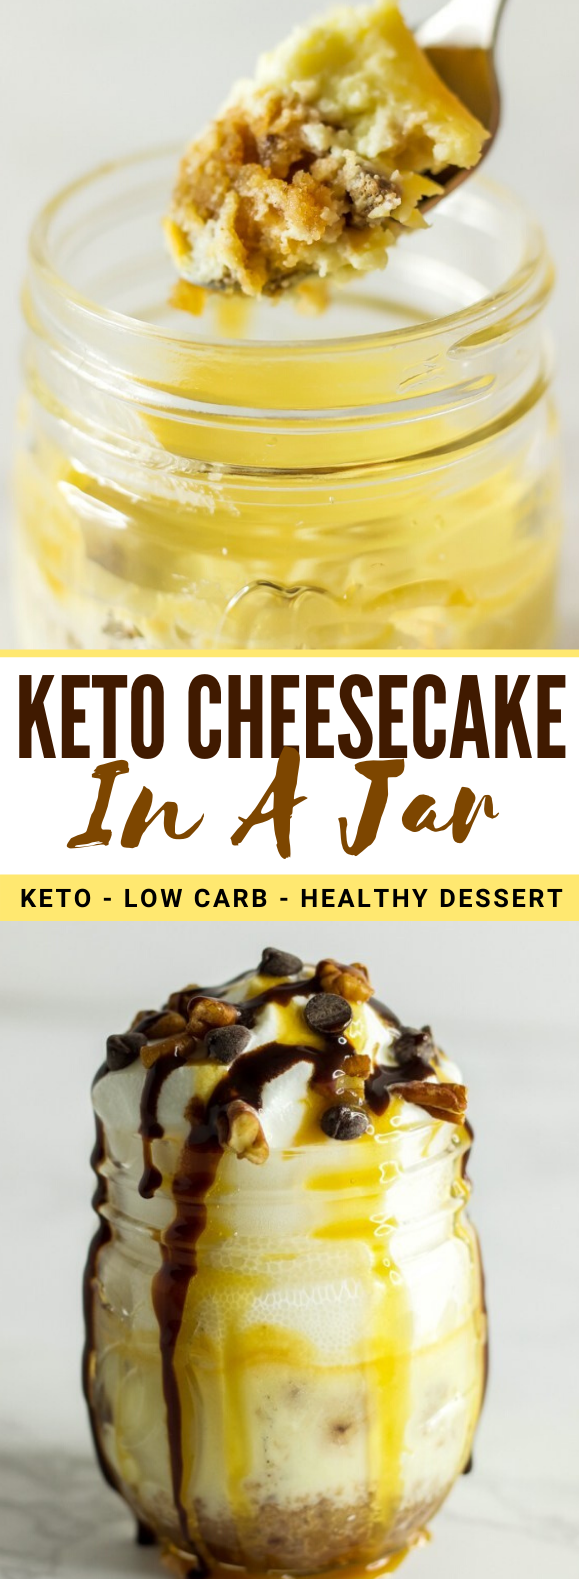 Keto Cheesecake In A Jar (Keto, Low Carb) #healthy #desserts #ketodiet #lowcarb #cheesecake